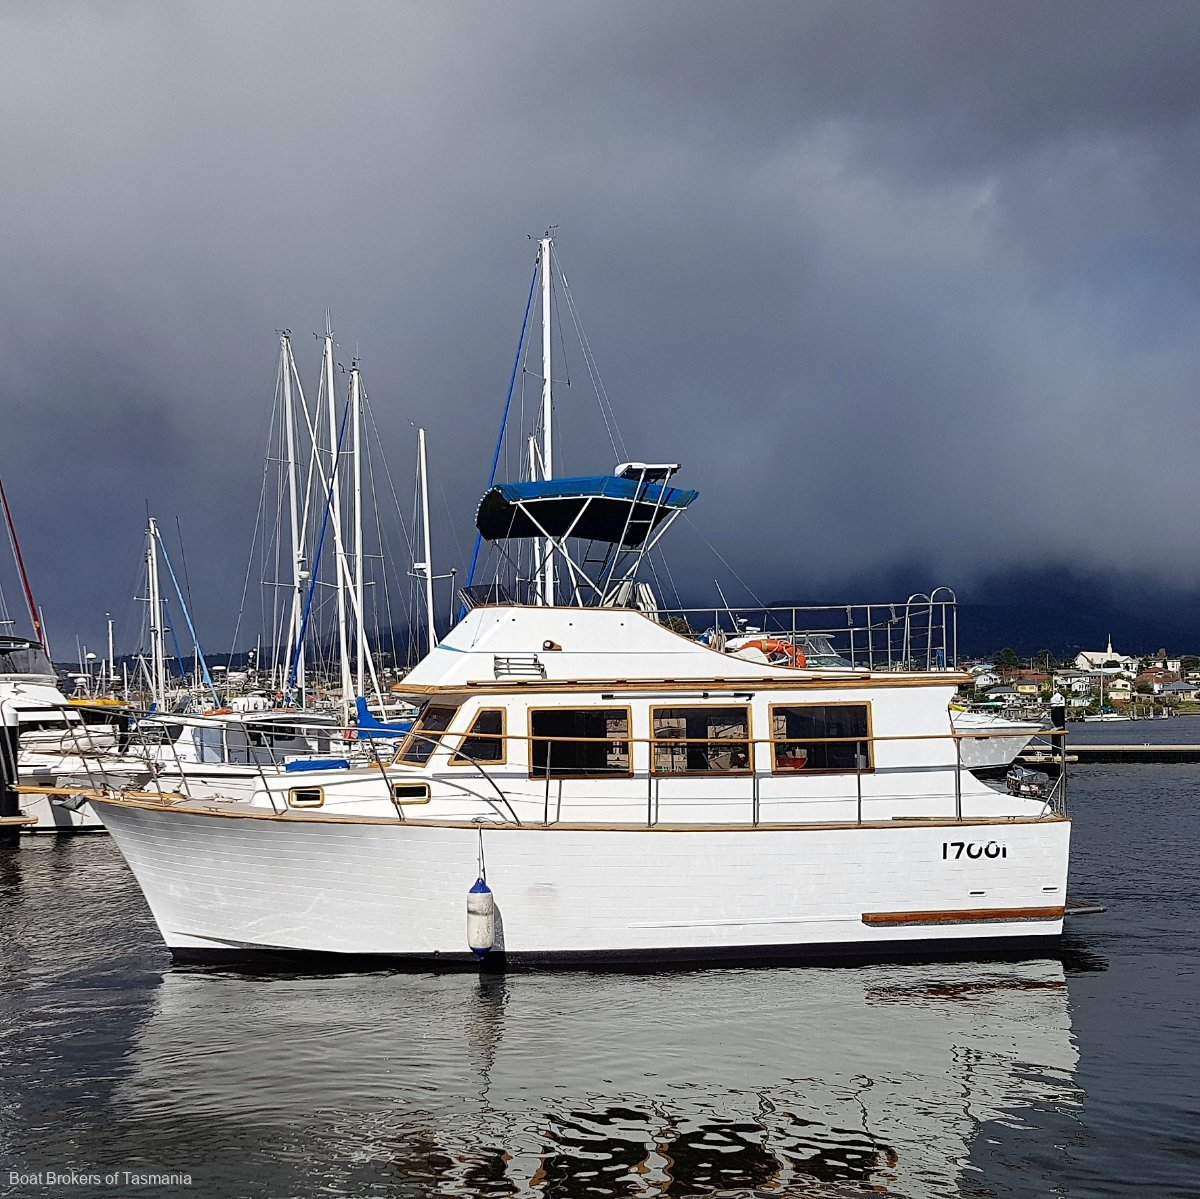 Annabelle Clipper 30 Flybridge Bowthruster, Ford 80hp diesel. A big 30 footer! Boat Brokers of Tasmania